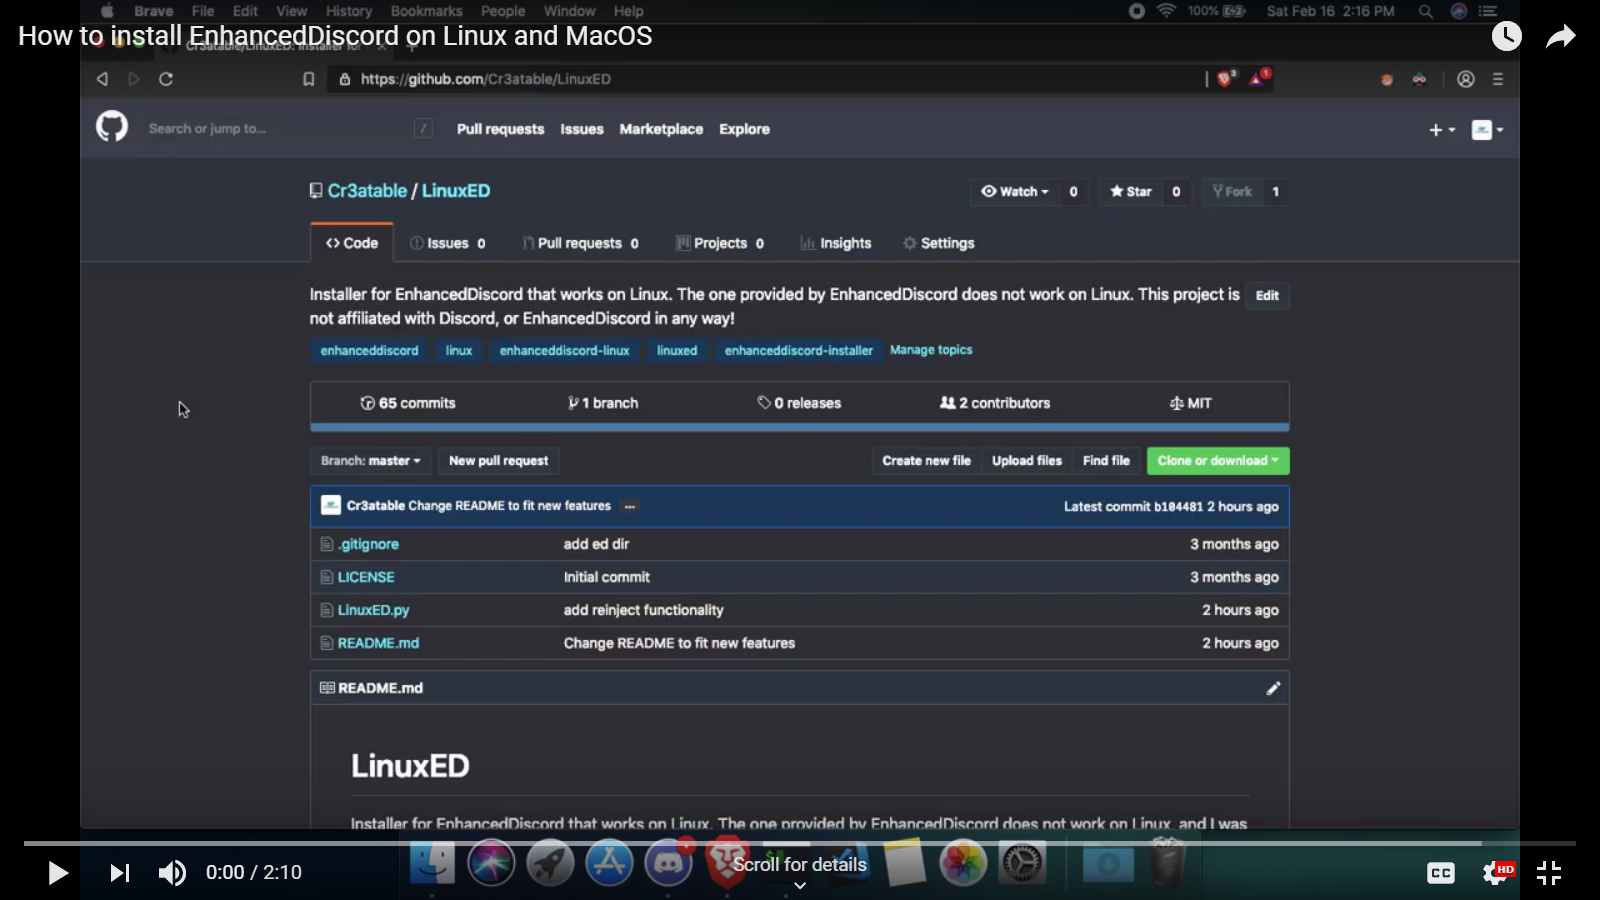 How to install EnhancedDiscord on Linux or MacOS